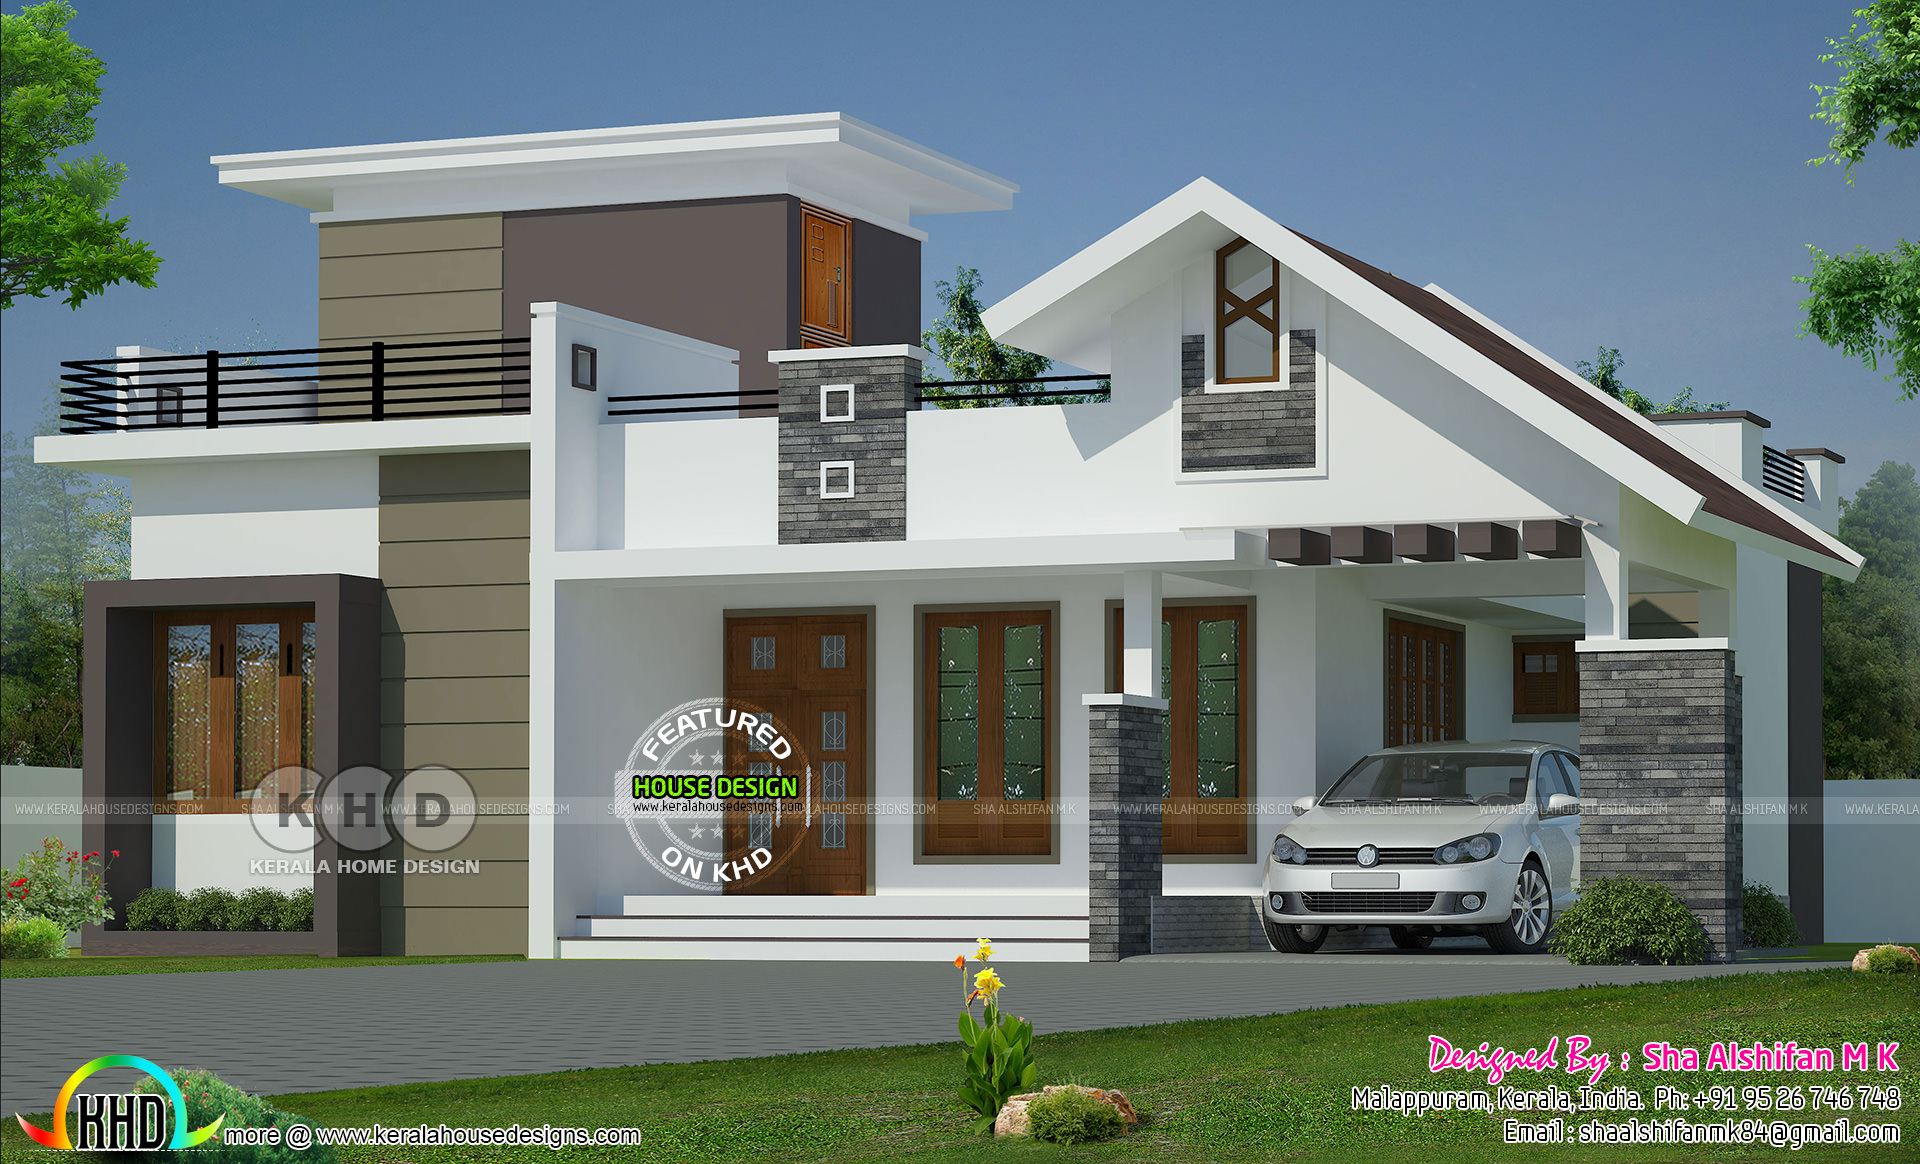 1132 Sq Ft 2 Bedroom Single Floor Home Mixed Roof Kerala Home Design And Floor Plans 8000 Houses